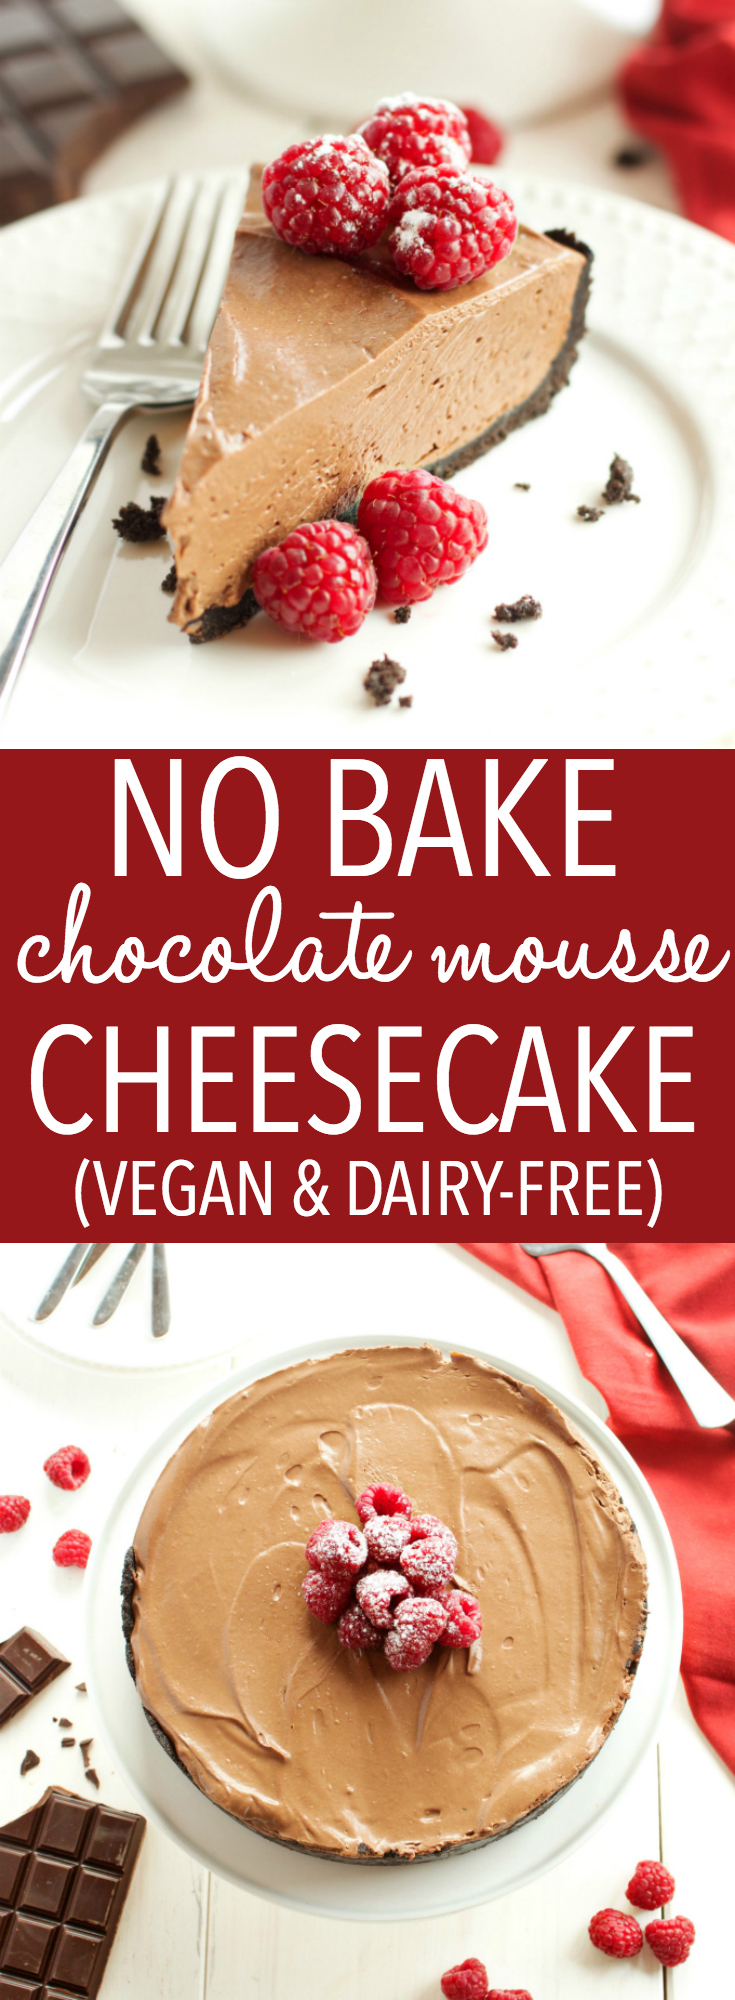 This No Bake Chocolate Mousse Cheesecake is the ultimate vegan and dairy-free chocolate dessert that's so smooth and creamy, made with a secret ingredient! Recipe from thebusybaker.ca #vegancheesecake #veganchocolatedessert #dairyfreedessert #dairyfreecheesecake #besteverchocolatecheesecake via @busybakerblog